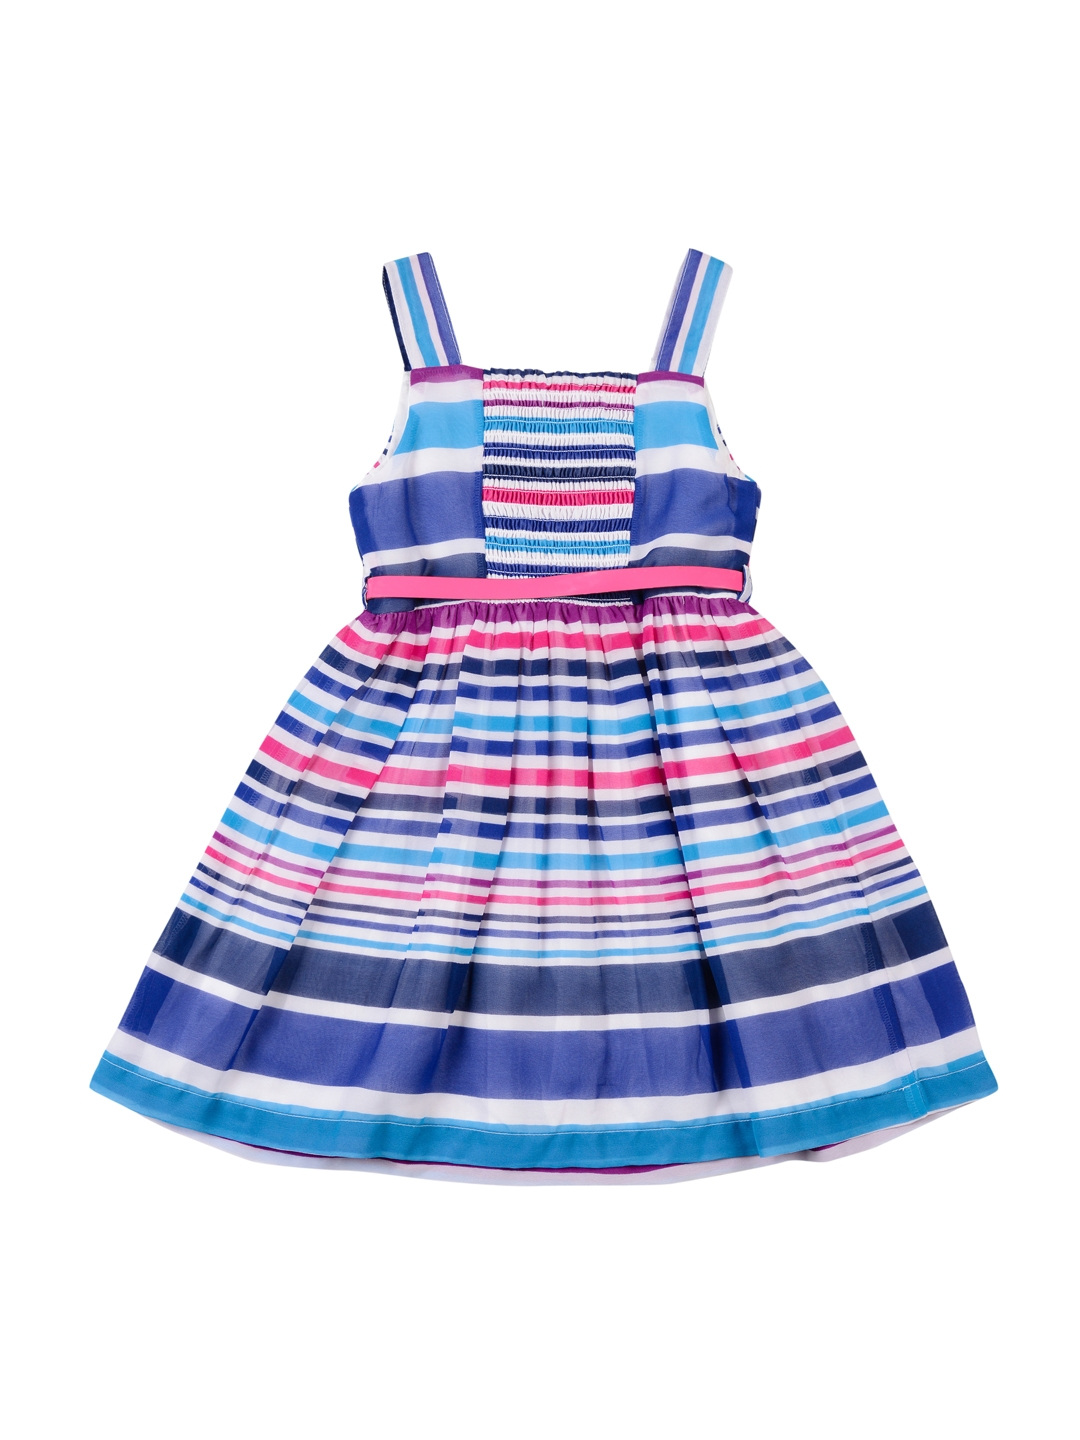 3e074a7a5 Buy Nauti Nati Girls Blue   White Striped Fit   Flare Dress ...